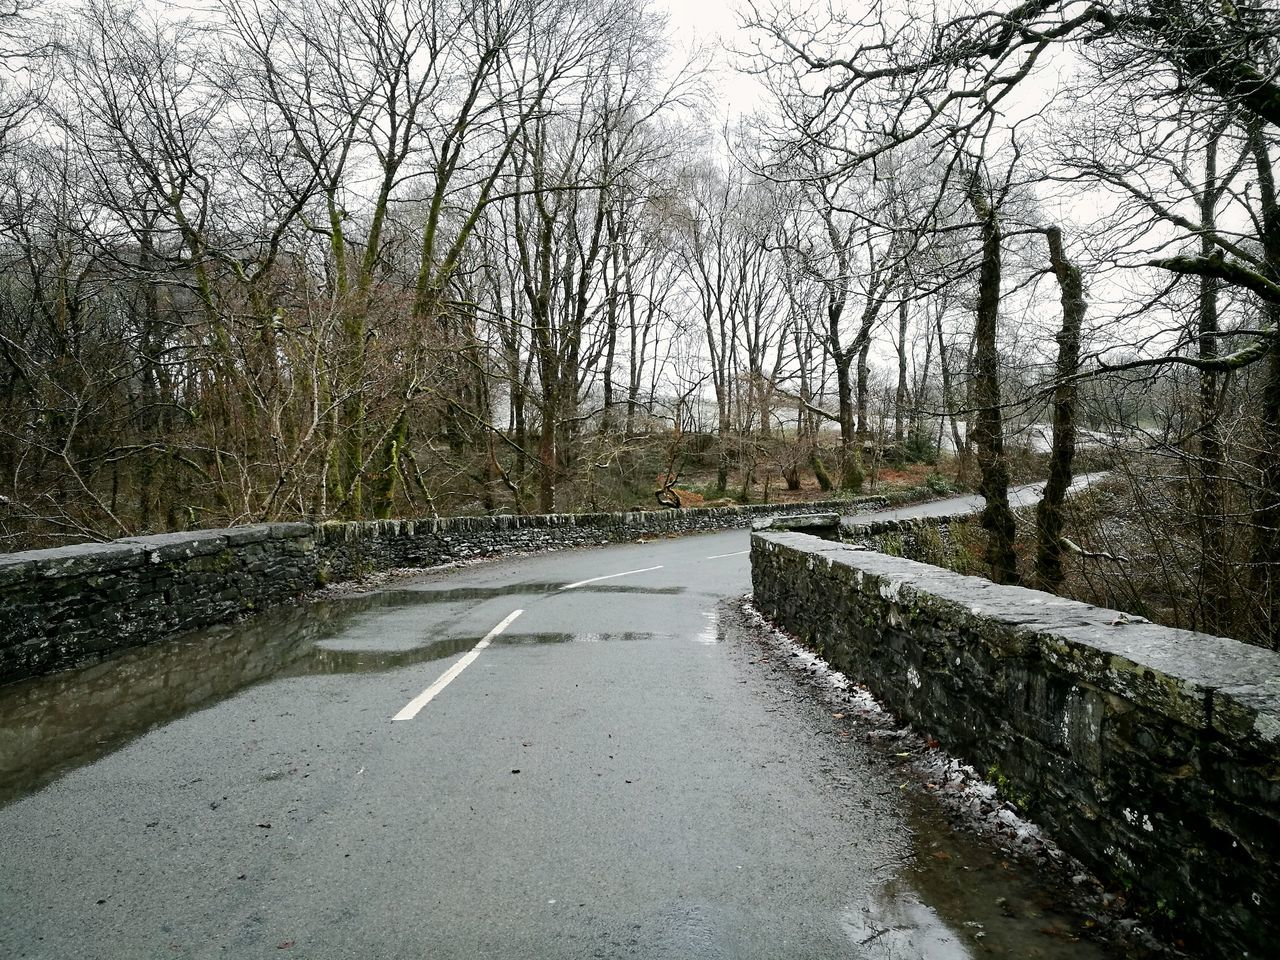 bare tree, road, tree, the way forward, nature, day, no people, outdoors, winter, water, sky